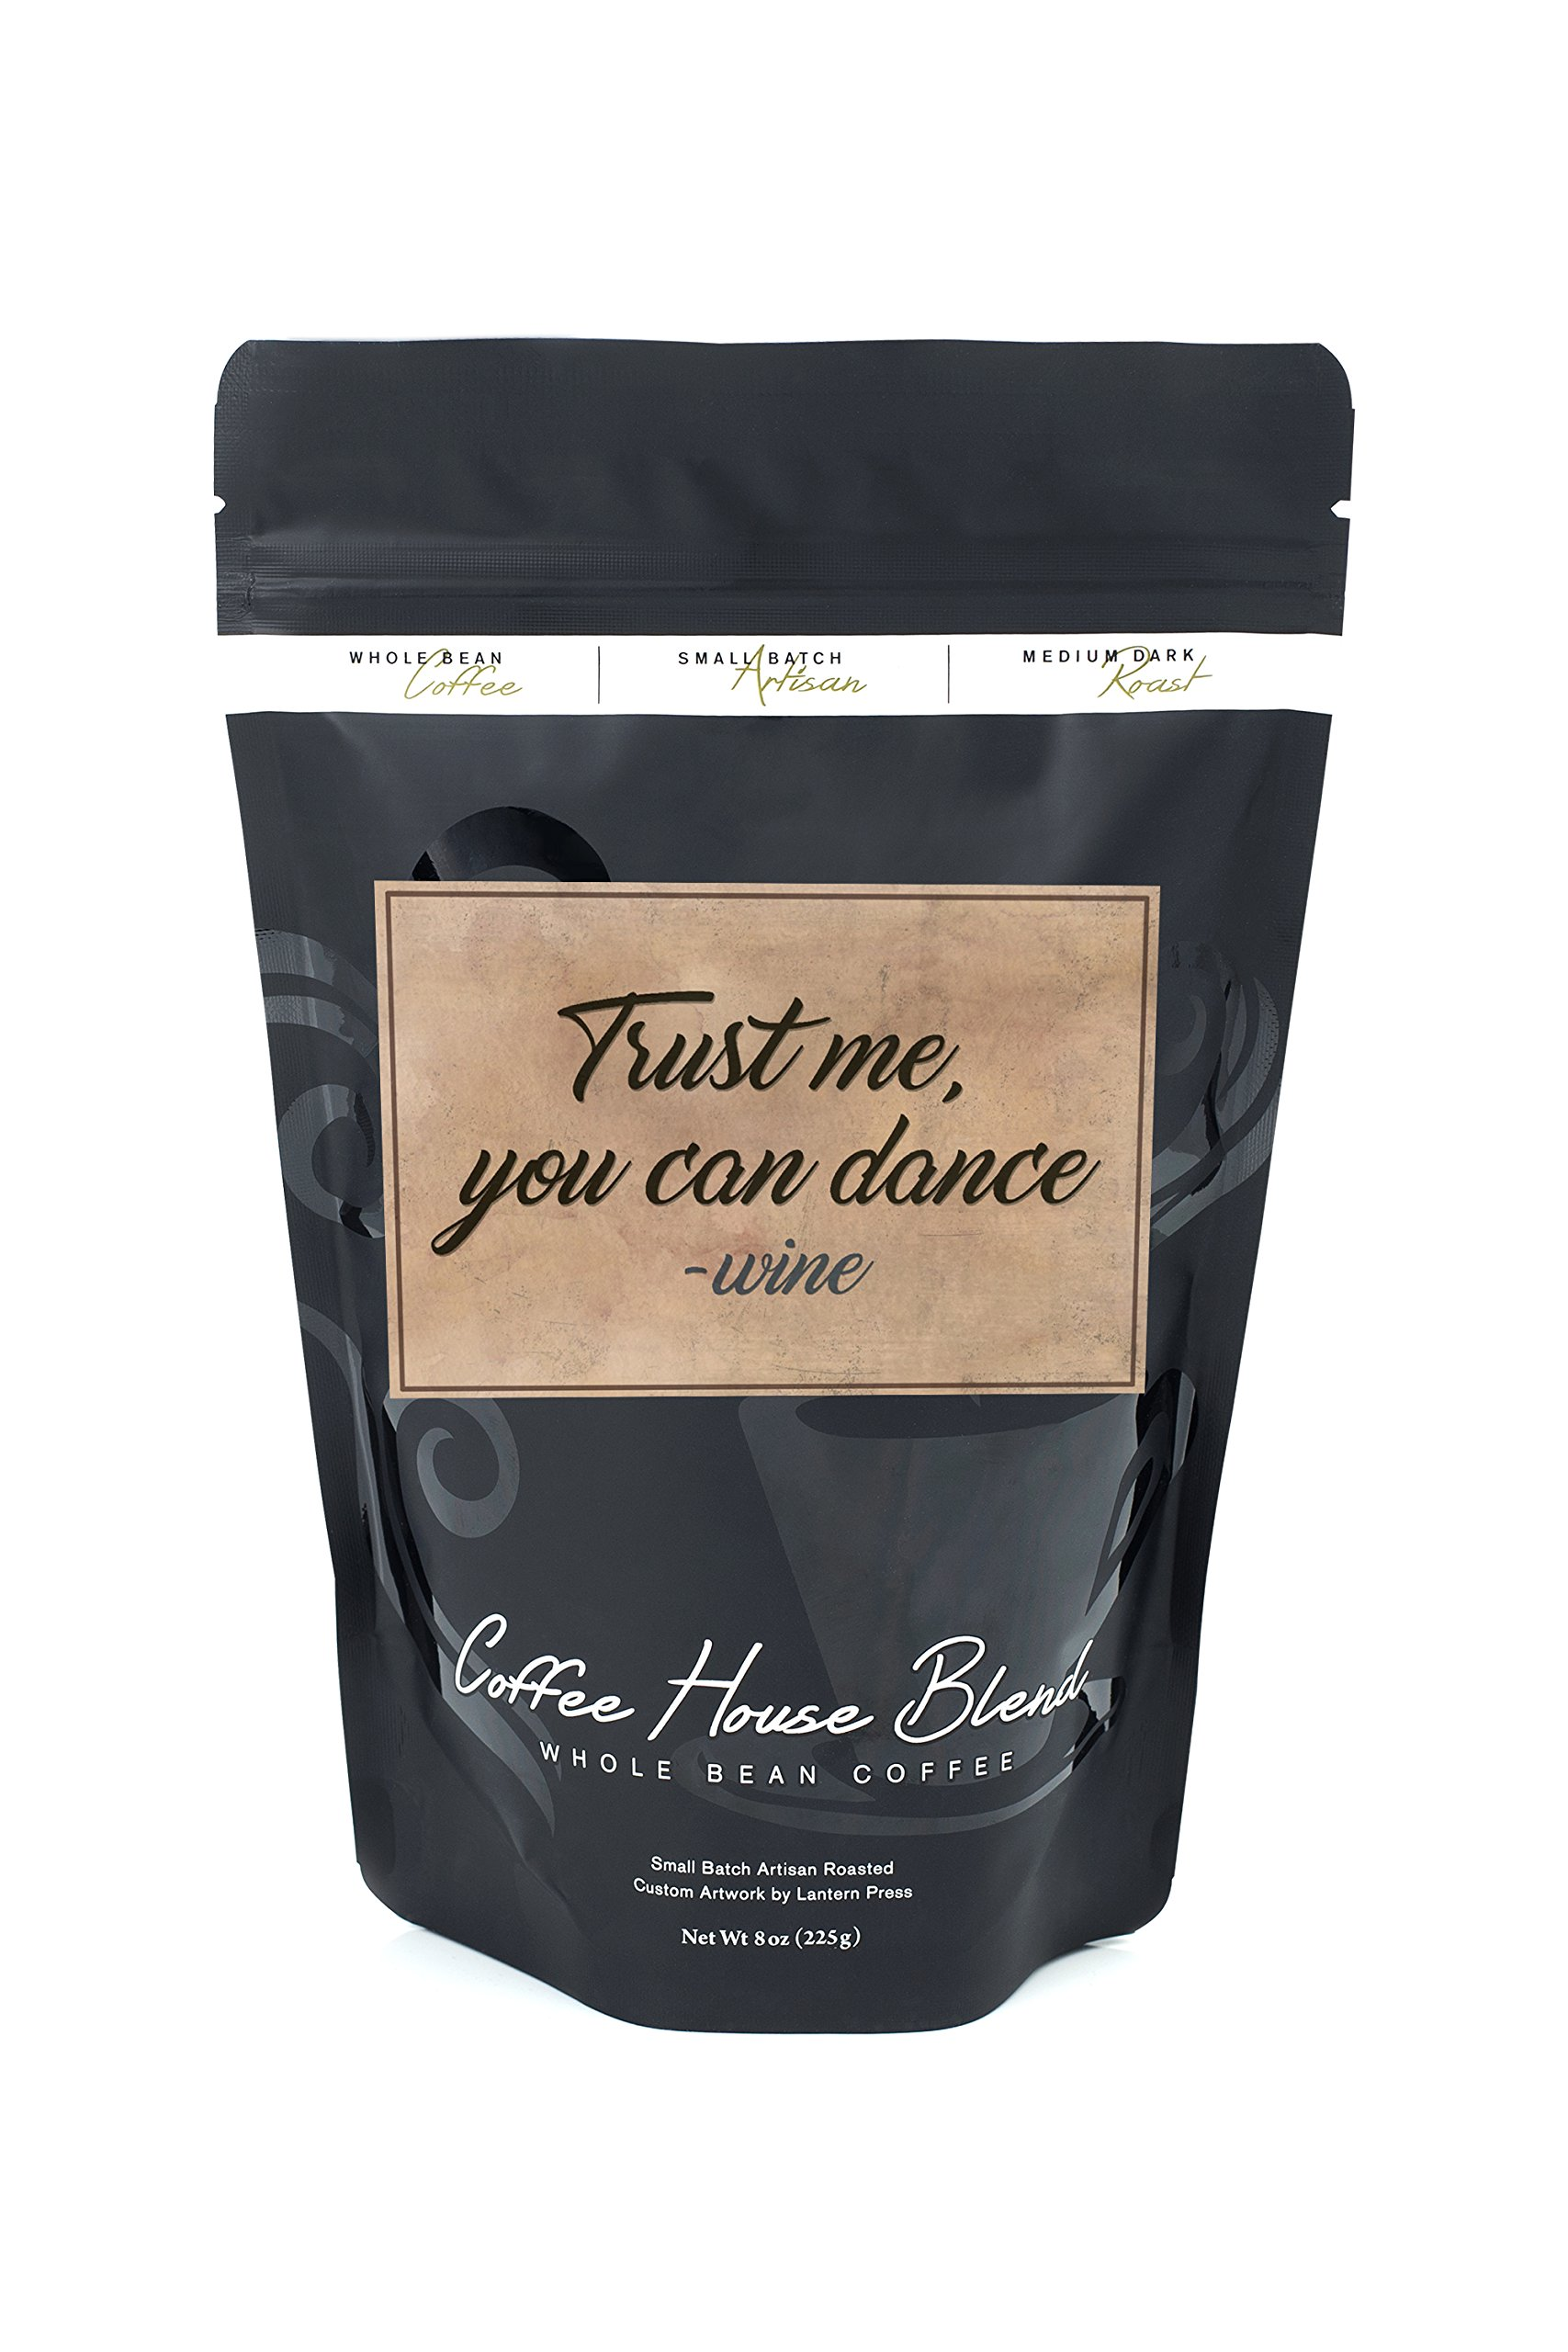 Quote - Trust Me, You Can Dance - Wine Saying (8oz Whole Bean Small Batch Artisan Coffee - Bold & Strong Medium Dark Roast w/ Artwork)